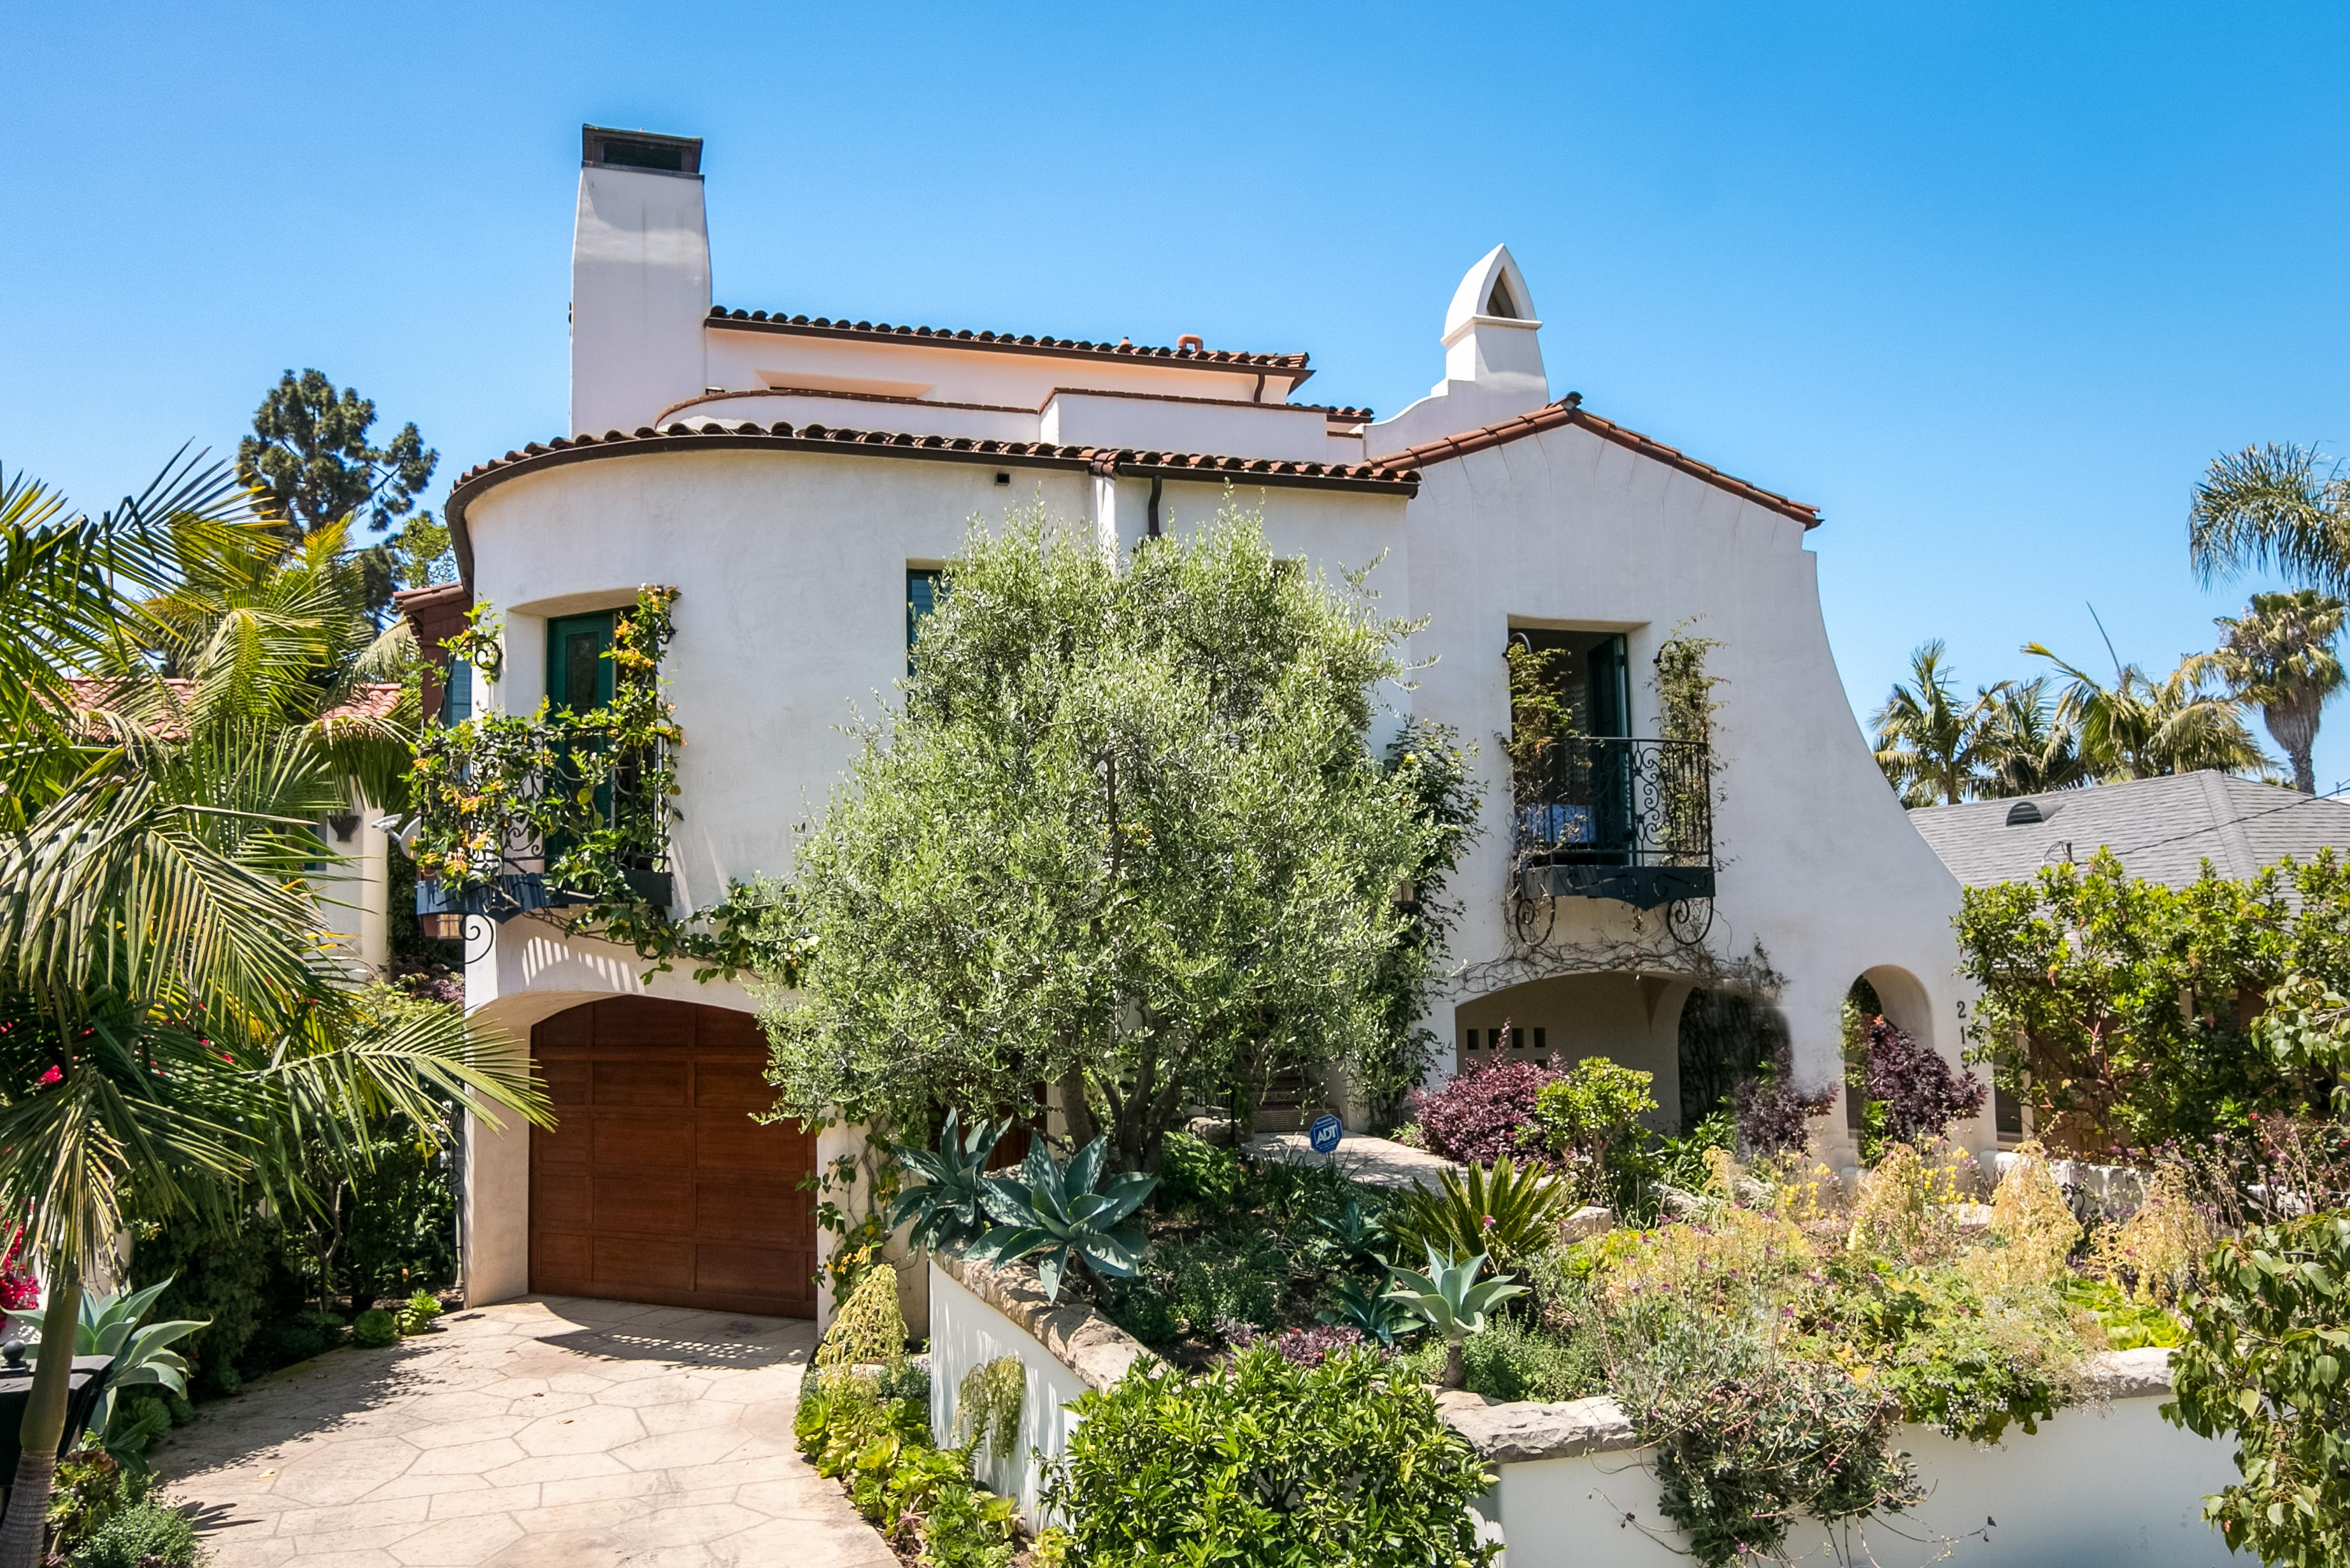 Welcome to Santa Barbara! This villa is professionally managed by TurnKey Vacation Rentals.